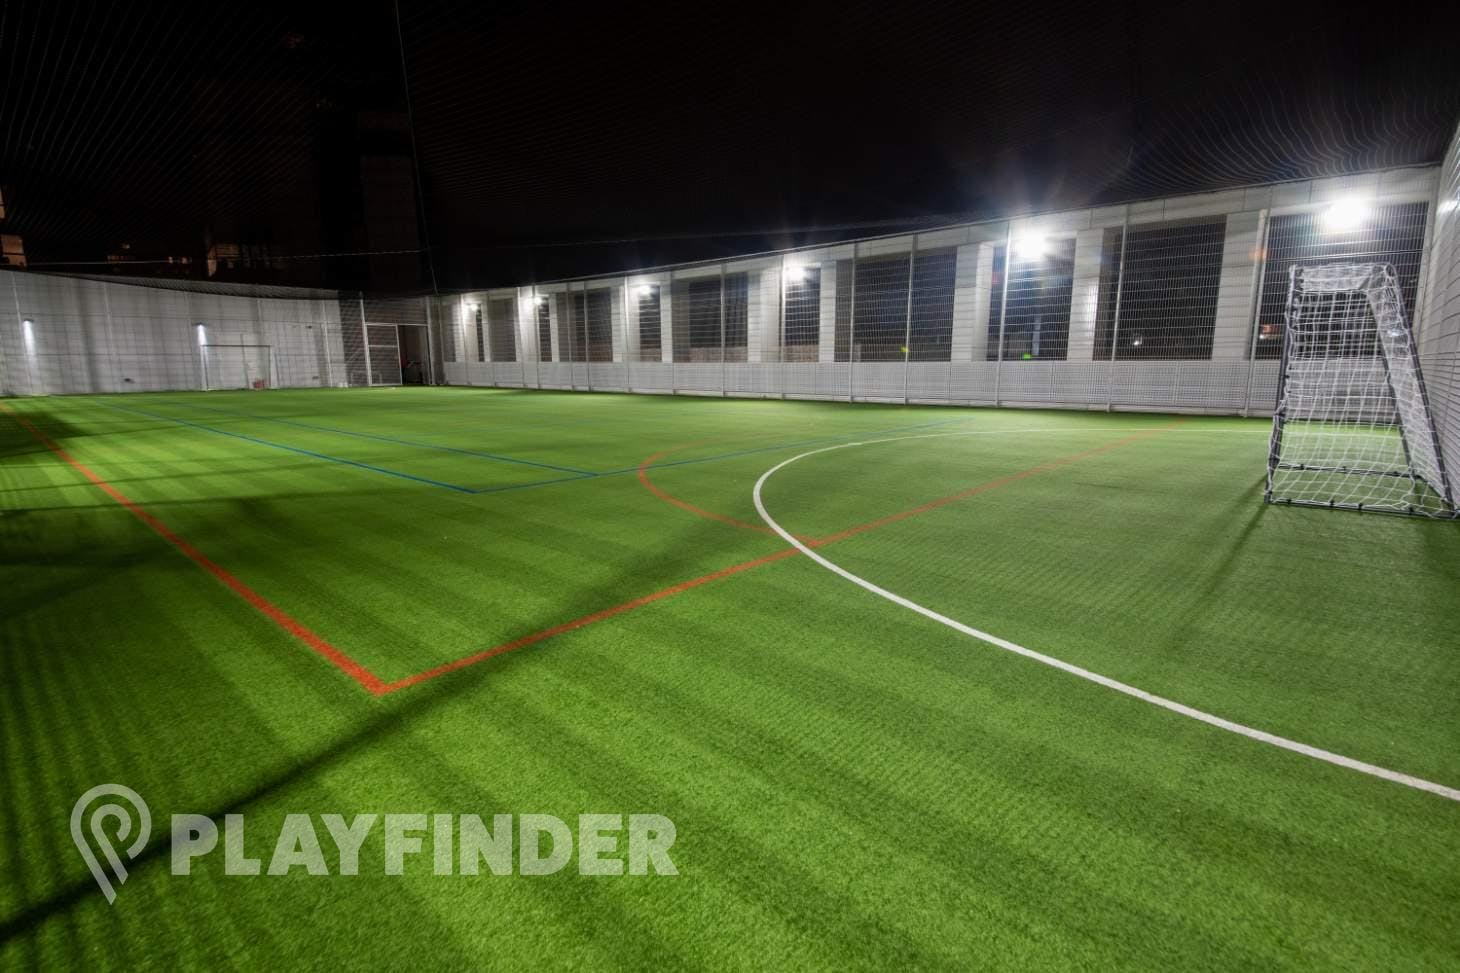 Battersea - Football567.com 5 a side | Astroturf football pitch